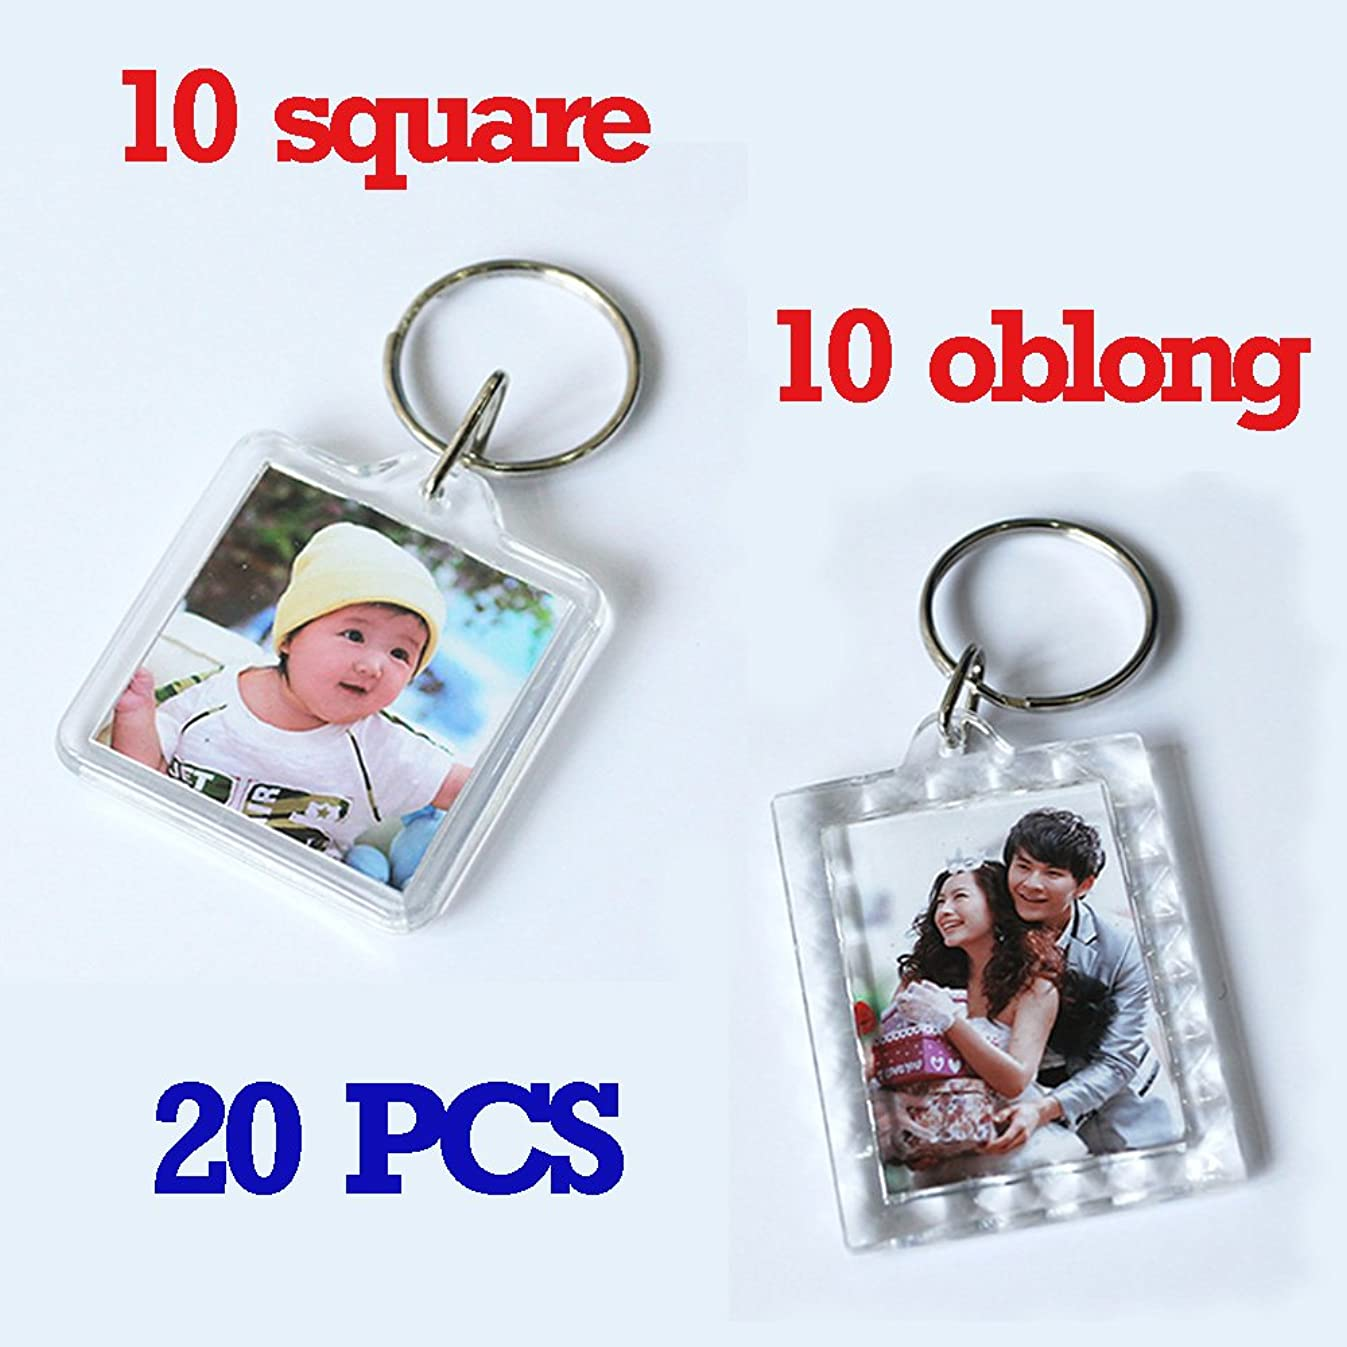 Clear Photo Frame Keychain Set - 20 Pieces Square & Rectangle Shapes Transparent Acrylic Snap-in Personalized Picture Frame Key Holder, Cool Gift for Friends Lovers and Family